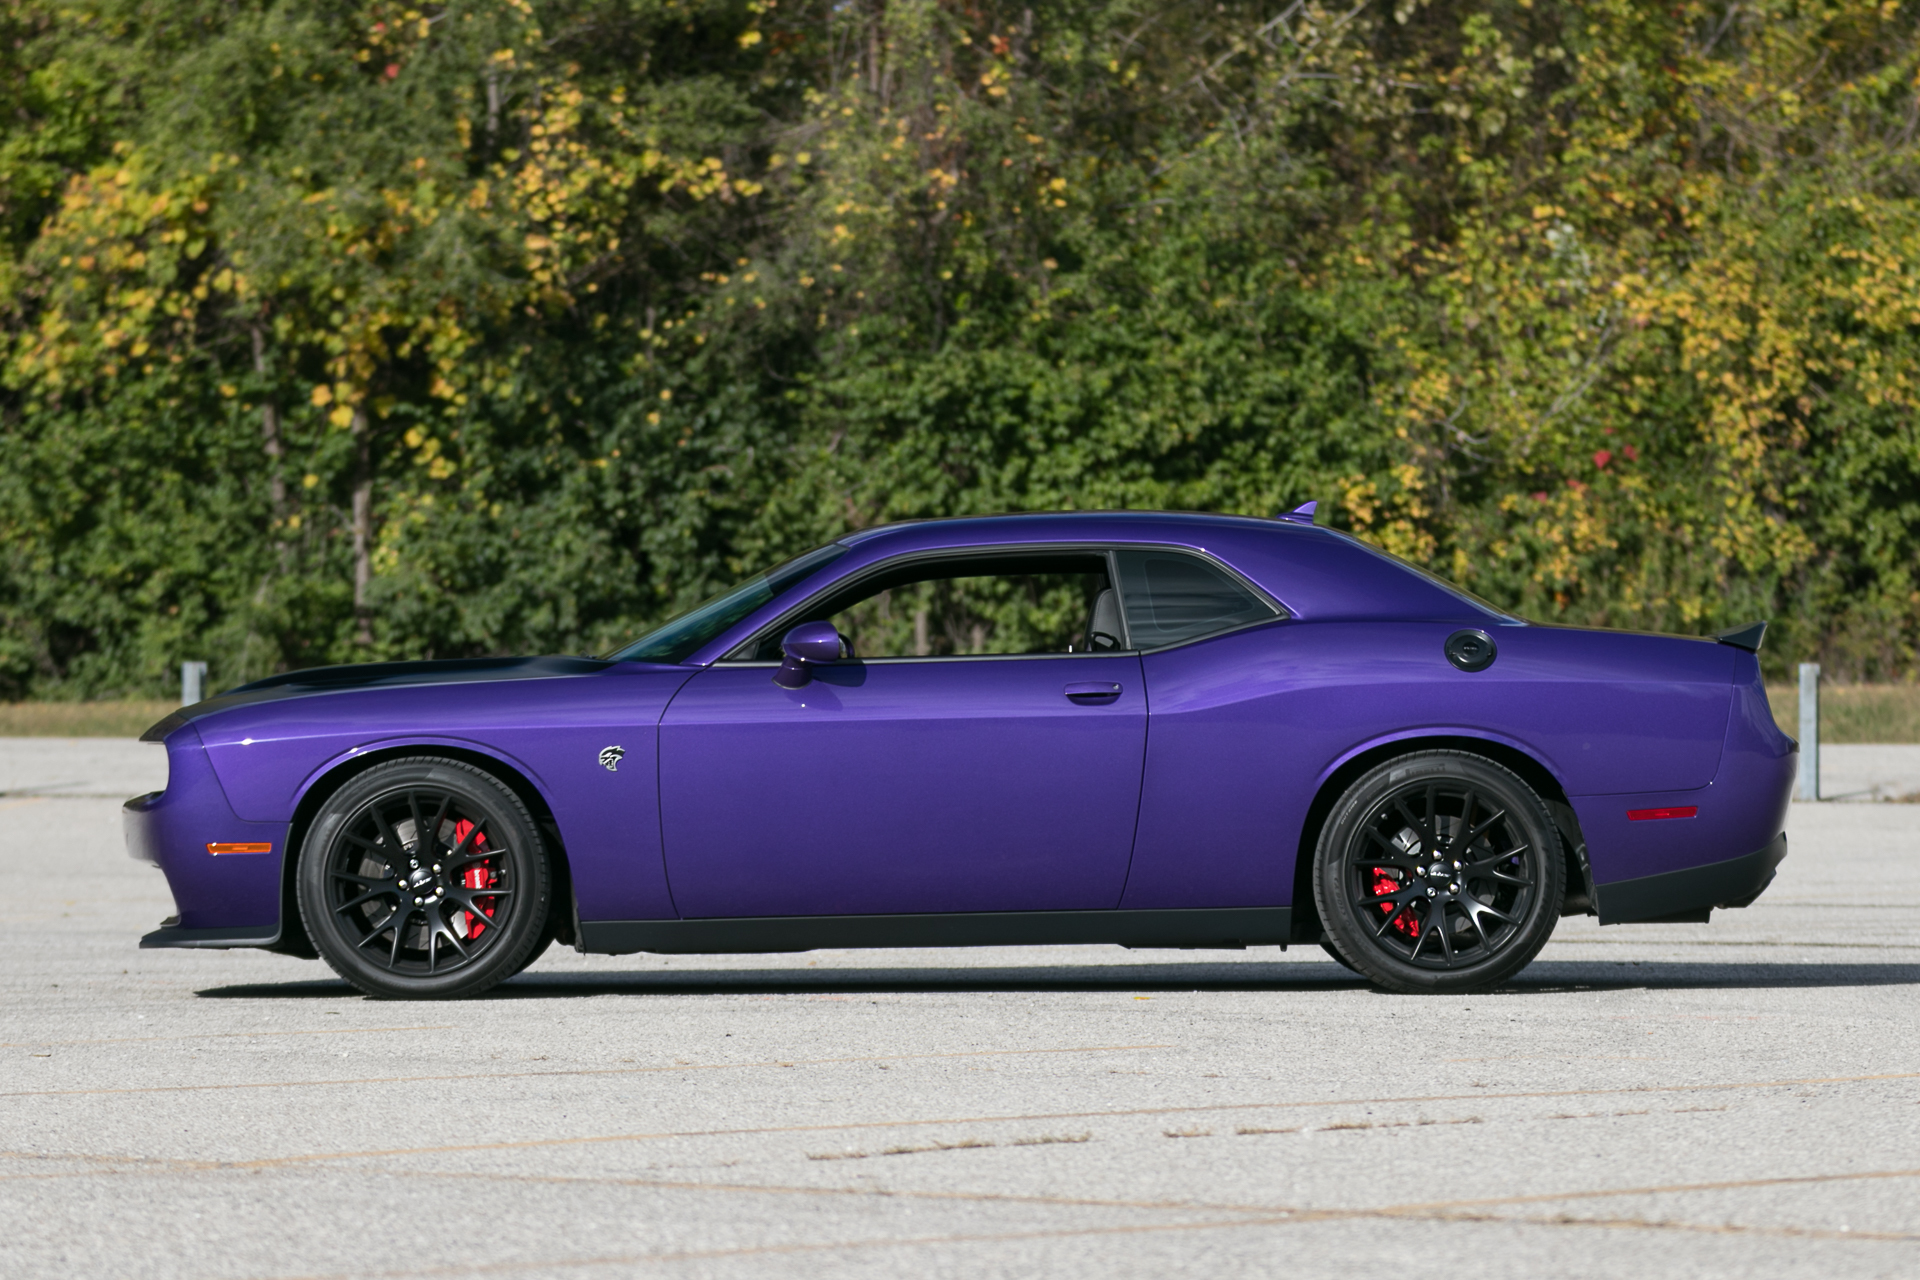 2016 dodge challenger hellcat fast lane classic cars. Black Bedroom Furniture Sets. Home Design Ideas